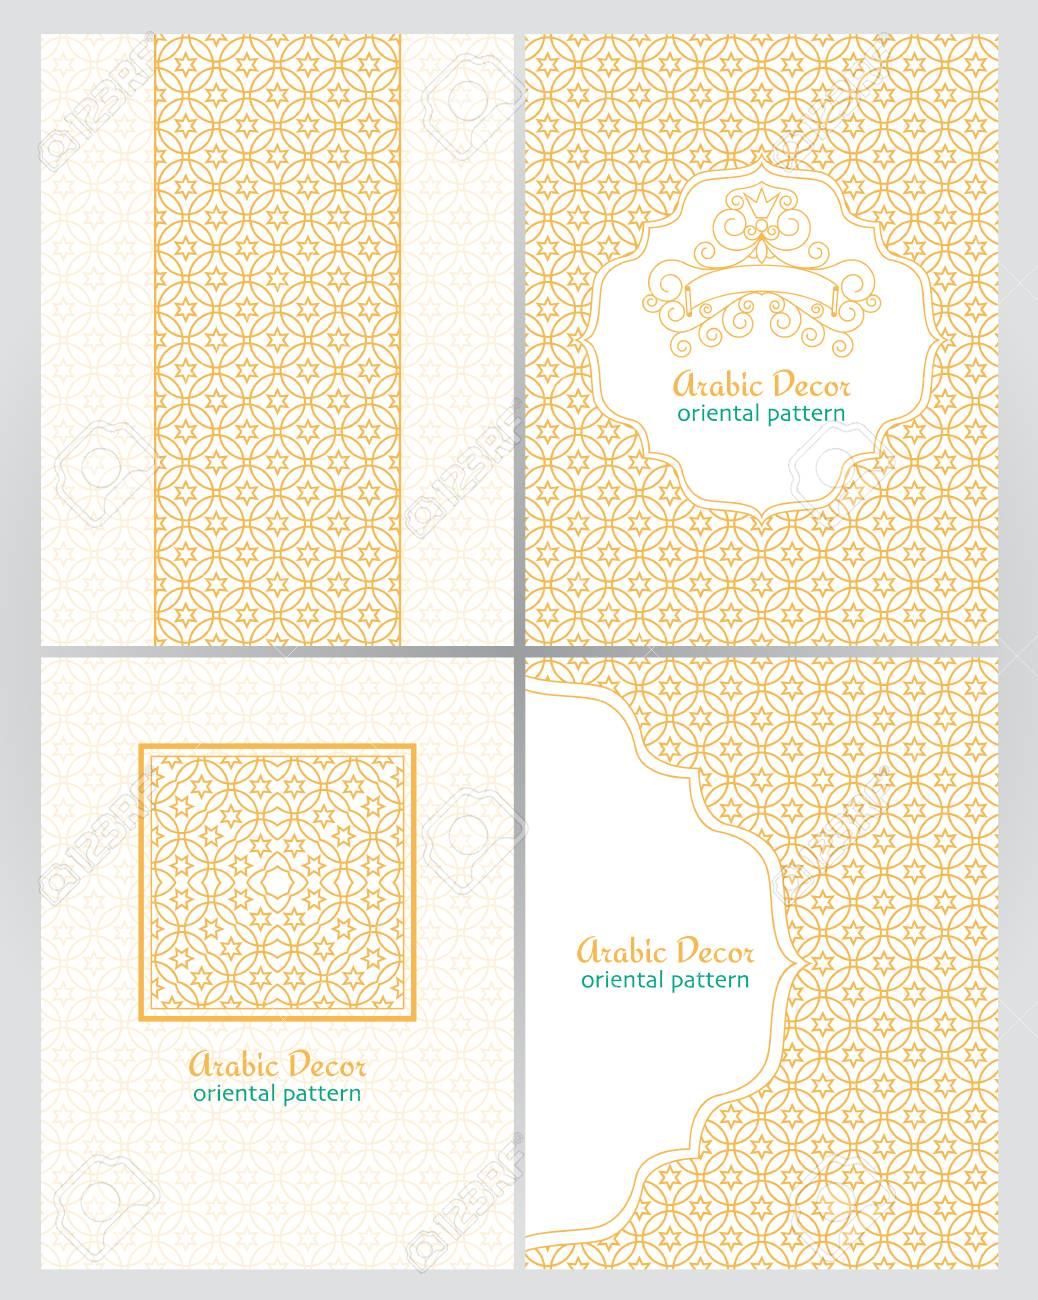 Vintage Ornate Cards In Oriental Style Golden Traditional Arabic